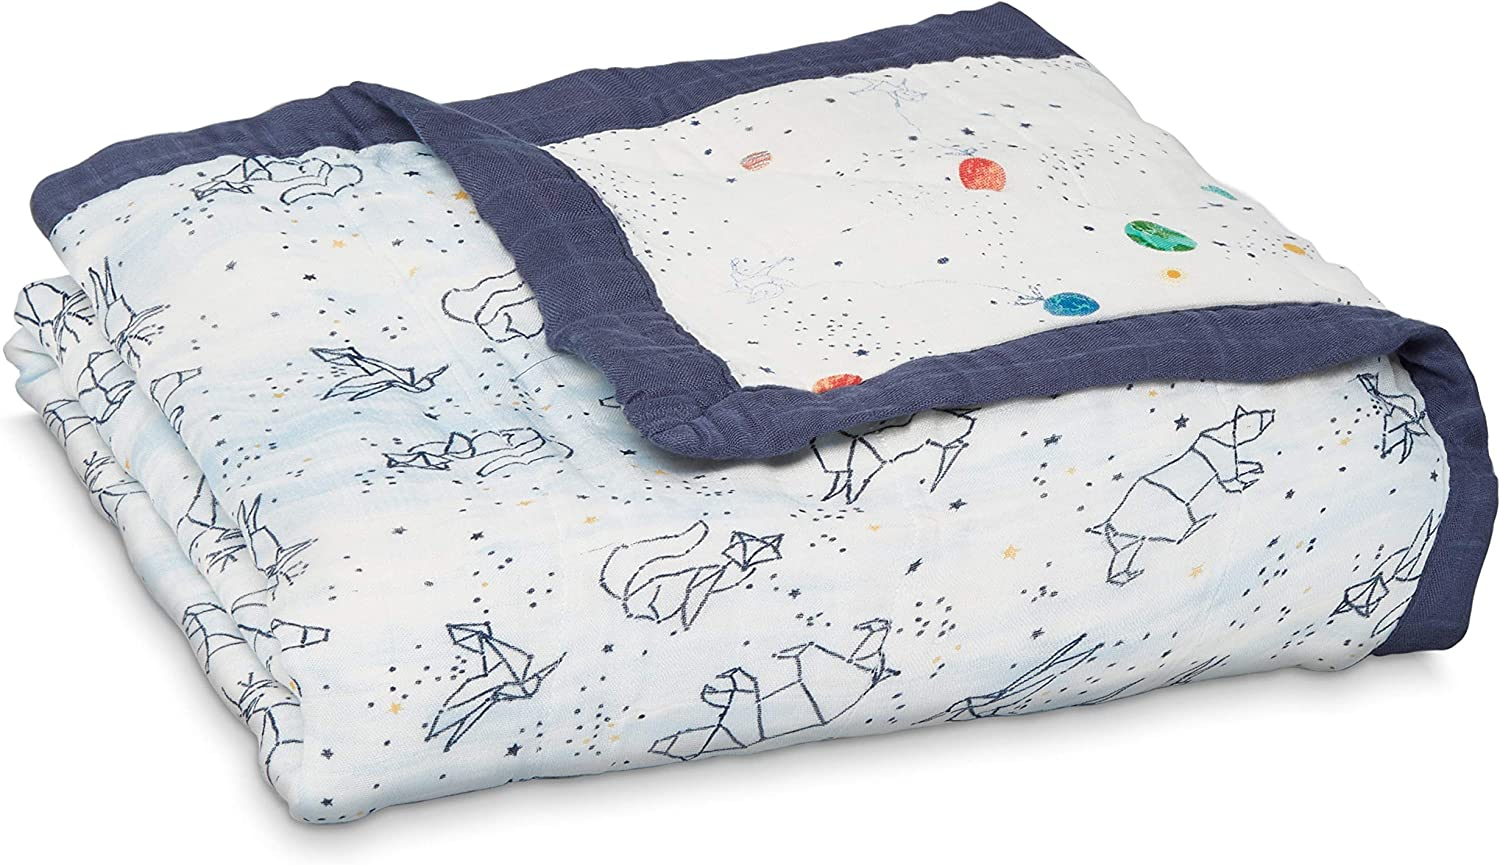 Aden + Anais 9331G Silky Soft Dream Blanket - Stargaze - Stellar, Multicolor: Amazon.es: Bebé